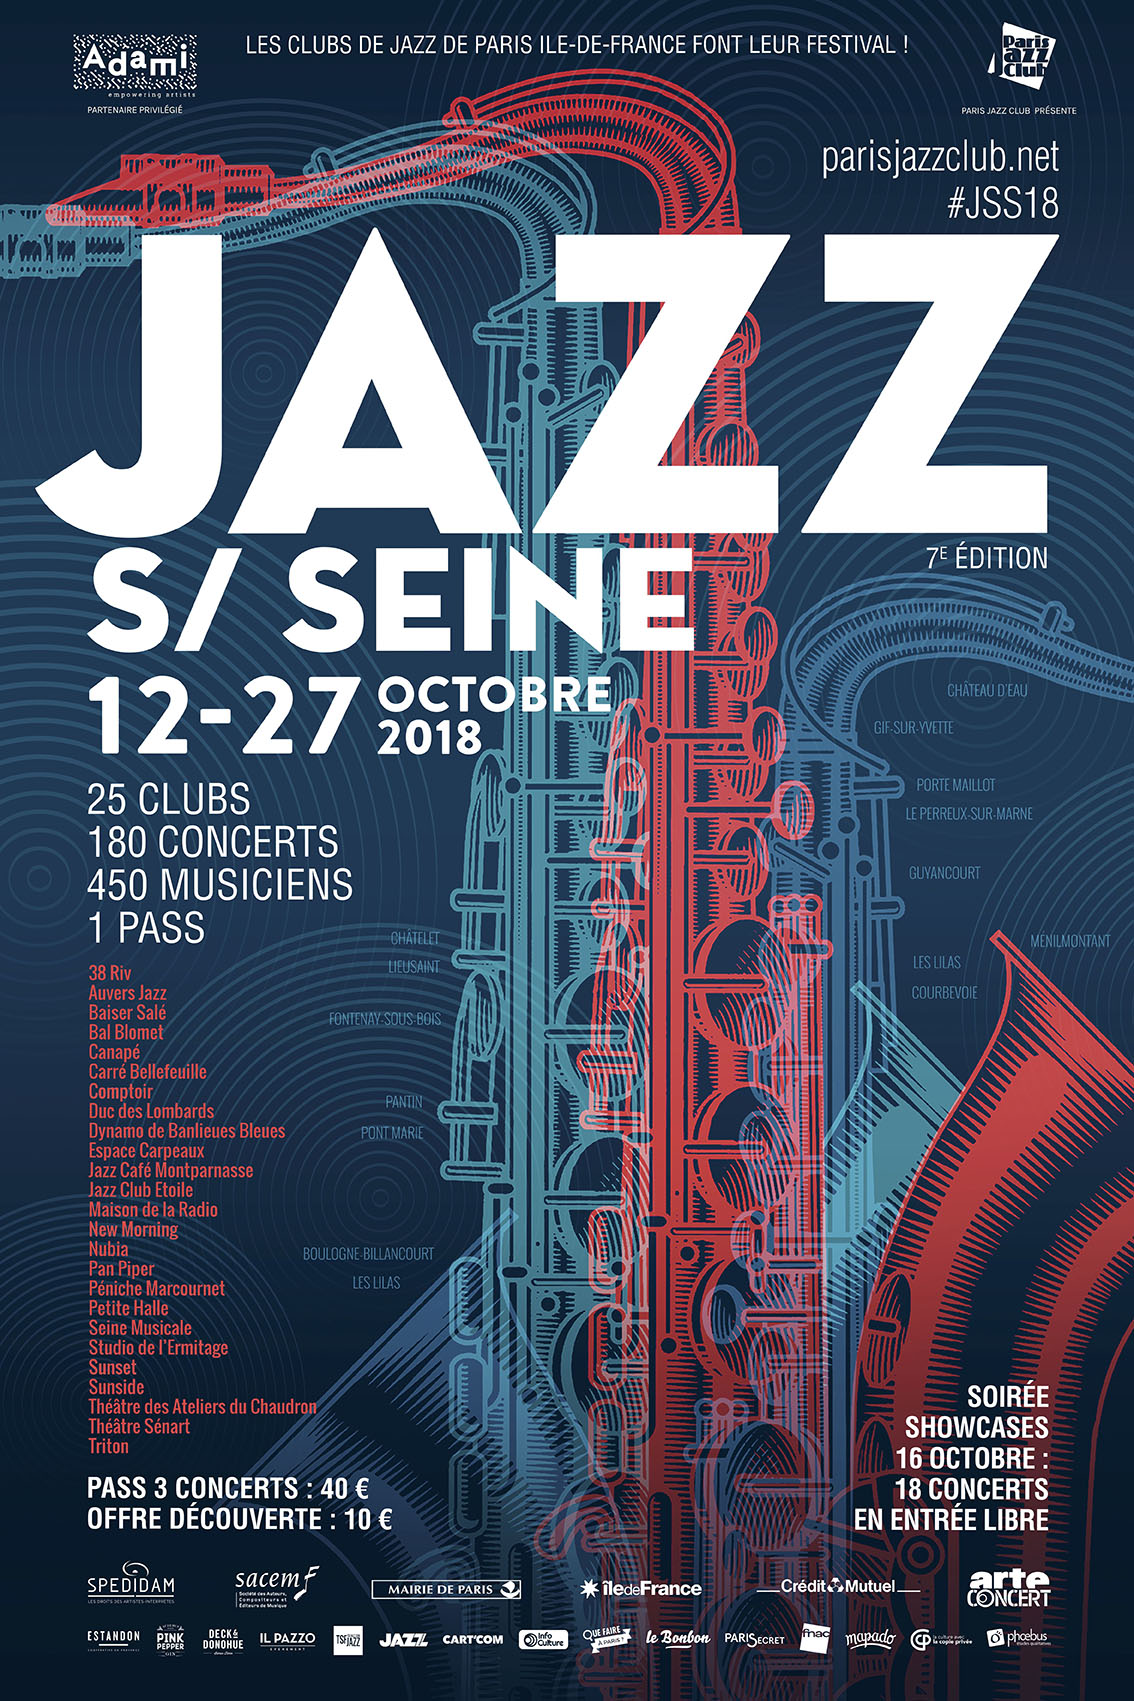 festival Jazz sur Seine, Paris, Ile-de-France, Club, Jazz, Music, Bar, Showcases, Ateliers, Masterclasses